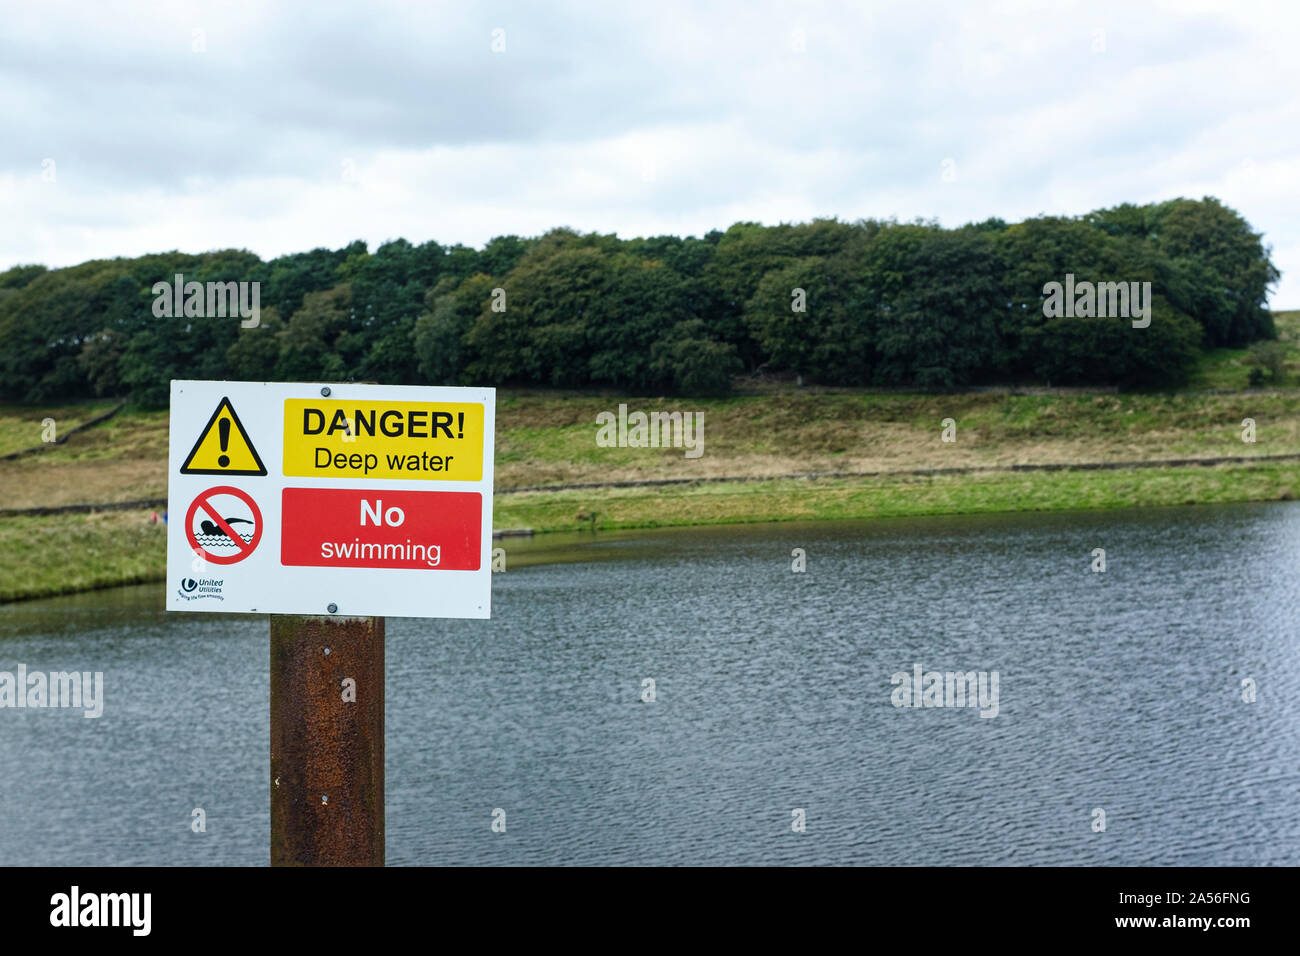 Danger deep water and no swimming sign next to a reservoir Stock Photo